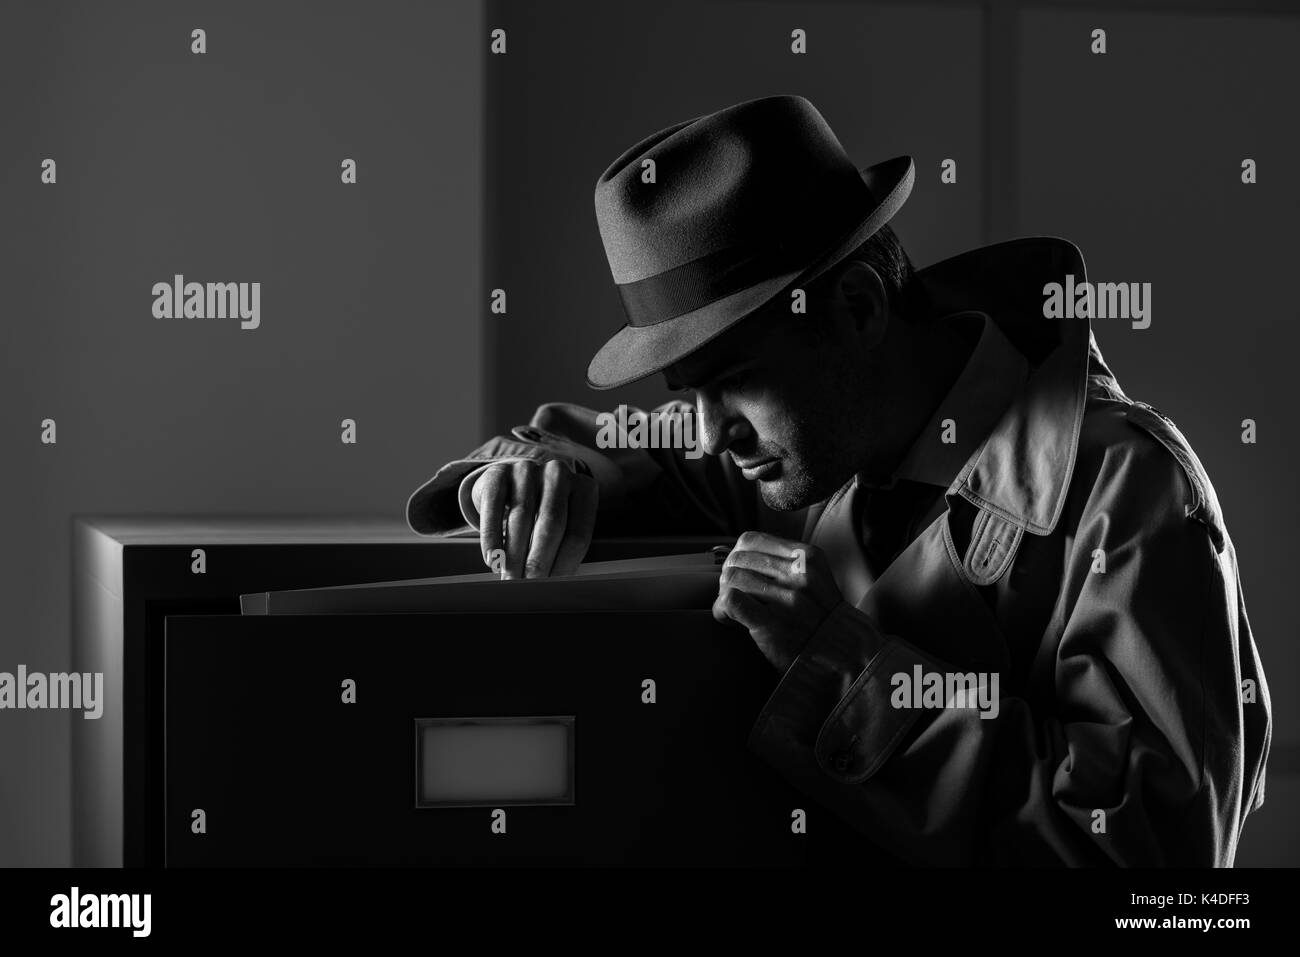 Vintage undercover criminal spy stealing files in a filing cabinet late at night, security and data theft concept - Stock Image